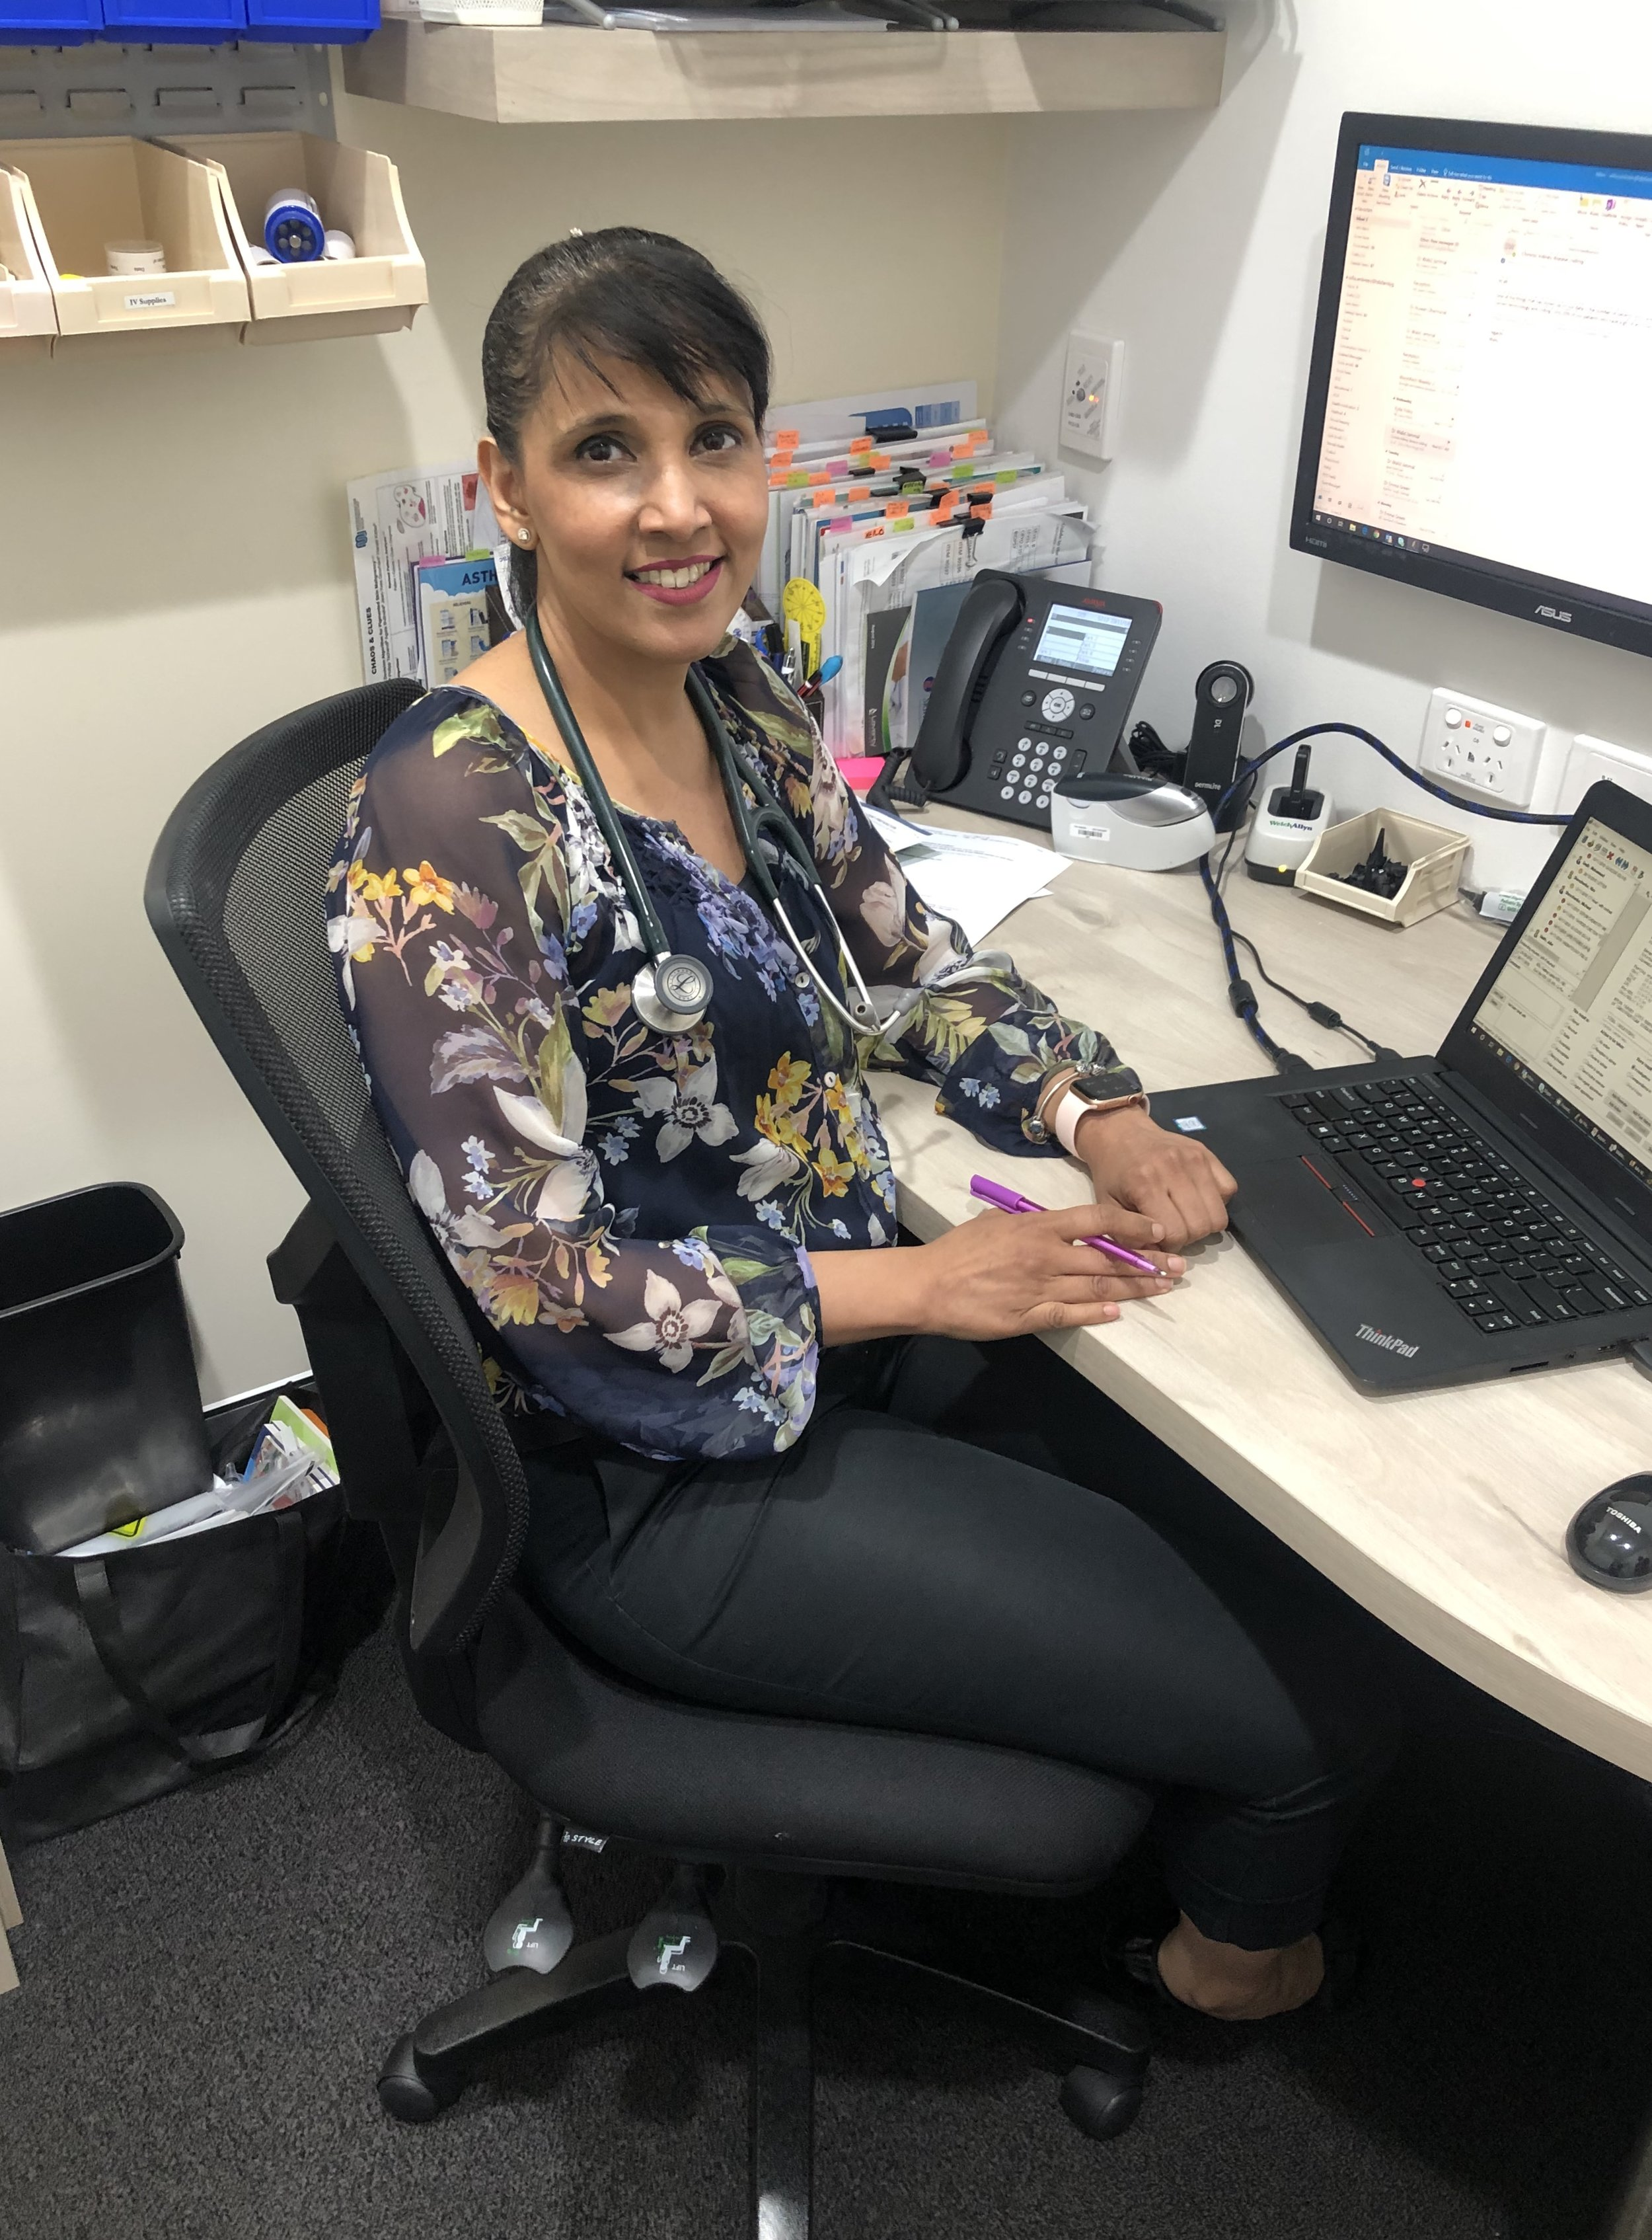 Dr Sofia Ambreen - MBBS (Pakistan) Dip, Australasian College of Skin Cancer Medicine MRCGP (UK) DRCOG F.R.A.C.G.P Dip, Child Health Dip. Child Health ( UK)Dr Ambreen completed her medical degree in Pakistan. She then went to England where she worked for many years. During this time she gained several qualifications, including DCH, from the Royal College of Paediatrics & Child Health, DRCOG from the Royal College of Obstetricians and Gynecologists, DFFP from the Faculty of Sexual and Reproductive Healthcare. Dr Ambreen has also attained her MRCGP from the Royal College of General Practice in the United Kingdom. In Australia Dr Ambreen has continued her advanced education and has gained a Diploma from the Australasian College of Skin Cancer Medicine and a Fellowship from the Royal Australian College of General Practice. Dr Ambreen has a strong interest in Skin Cancer Medicine, including diagnosis with skin checks and excision. She is also interested in Gynecology and is qualified to insert IUD's.